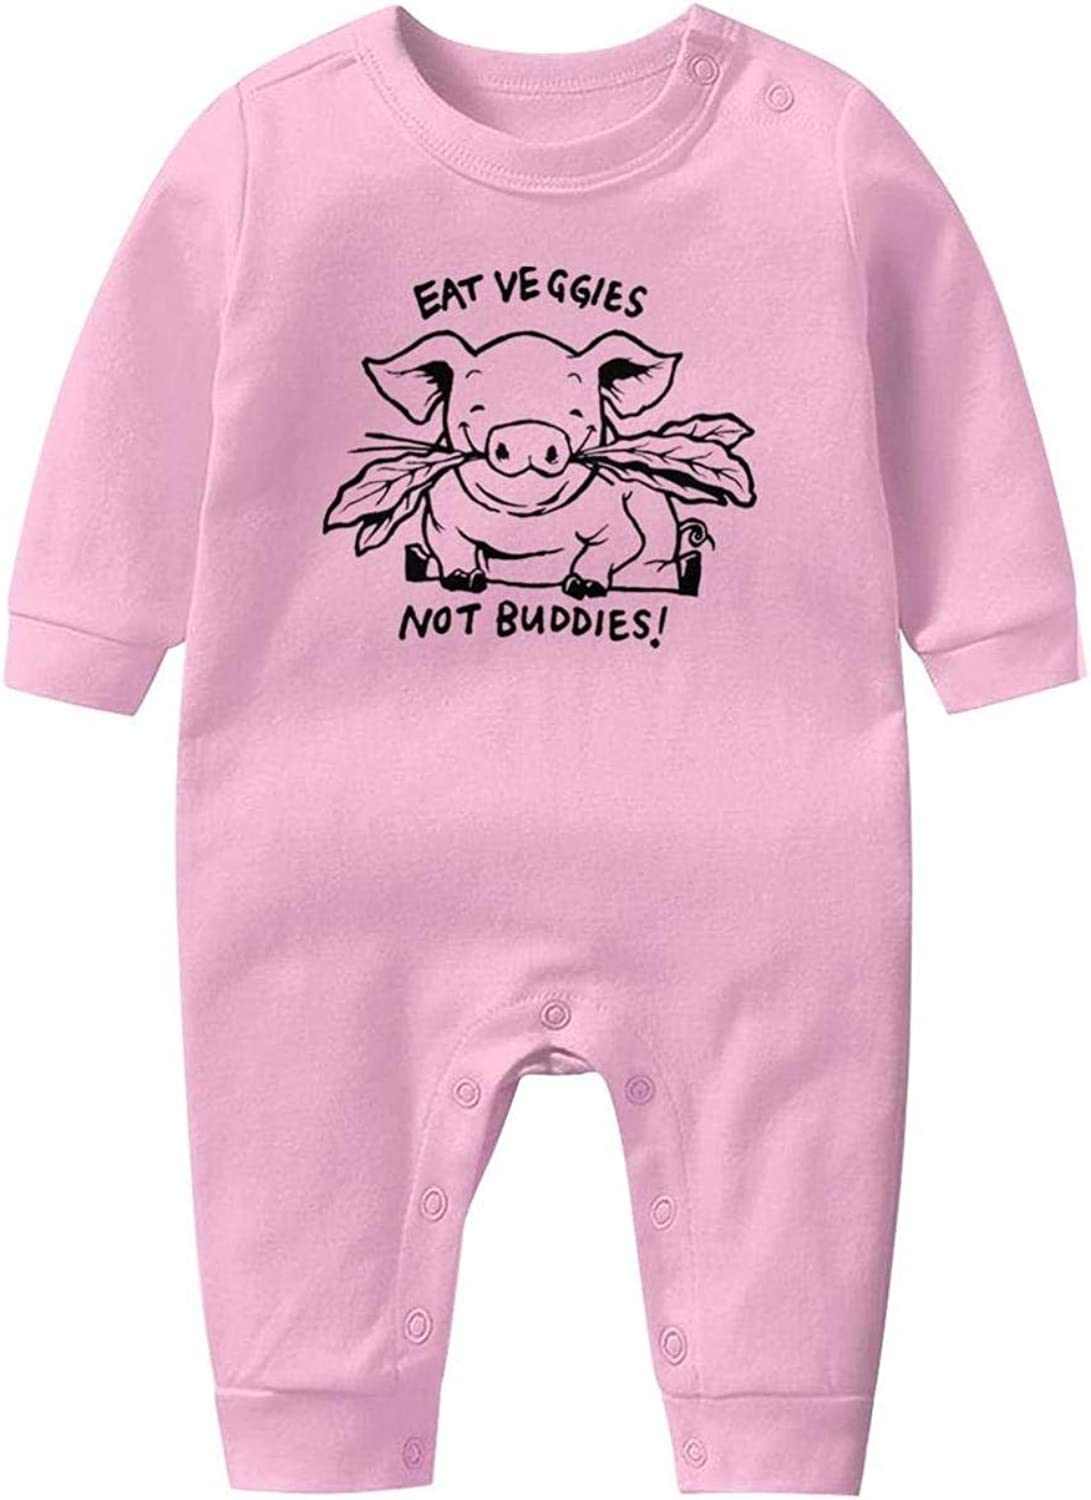 I Dont Give a Flock Flamingo Baby Boys Girls Long Sleeve Baby Onesie Babys Creeper